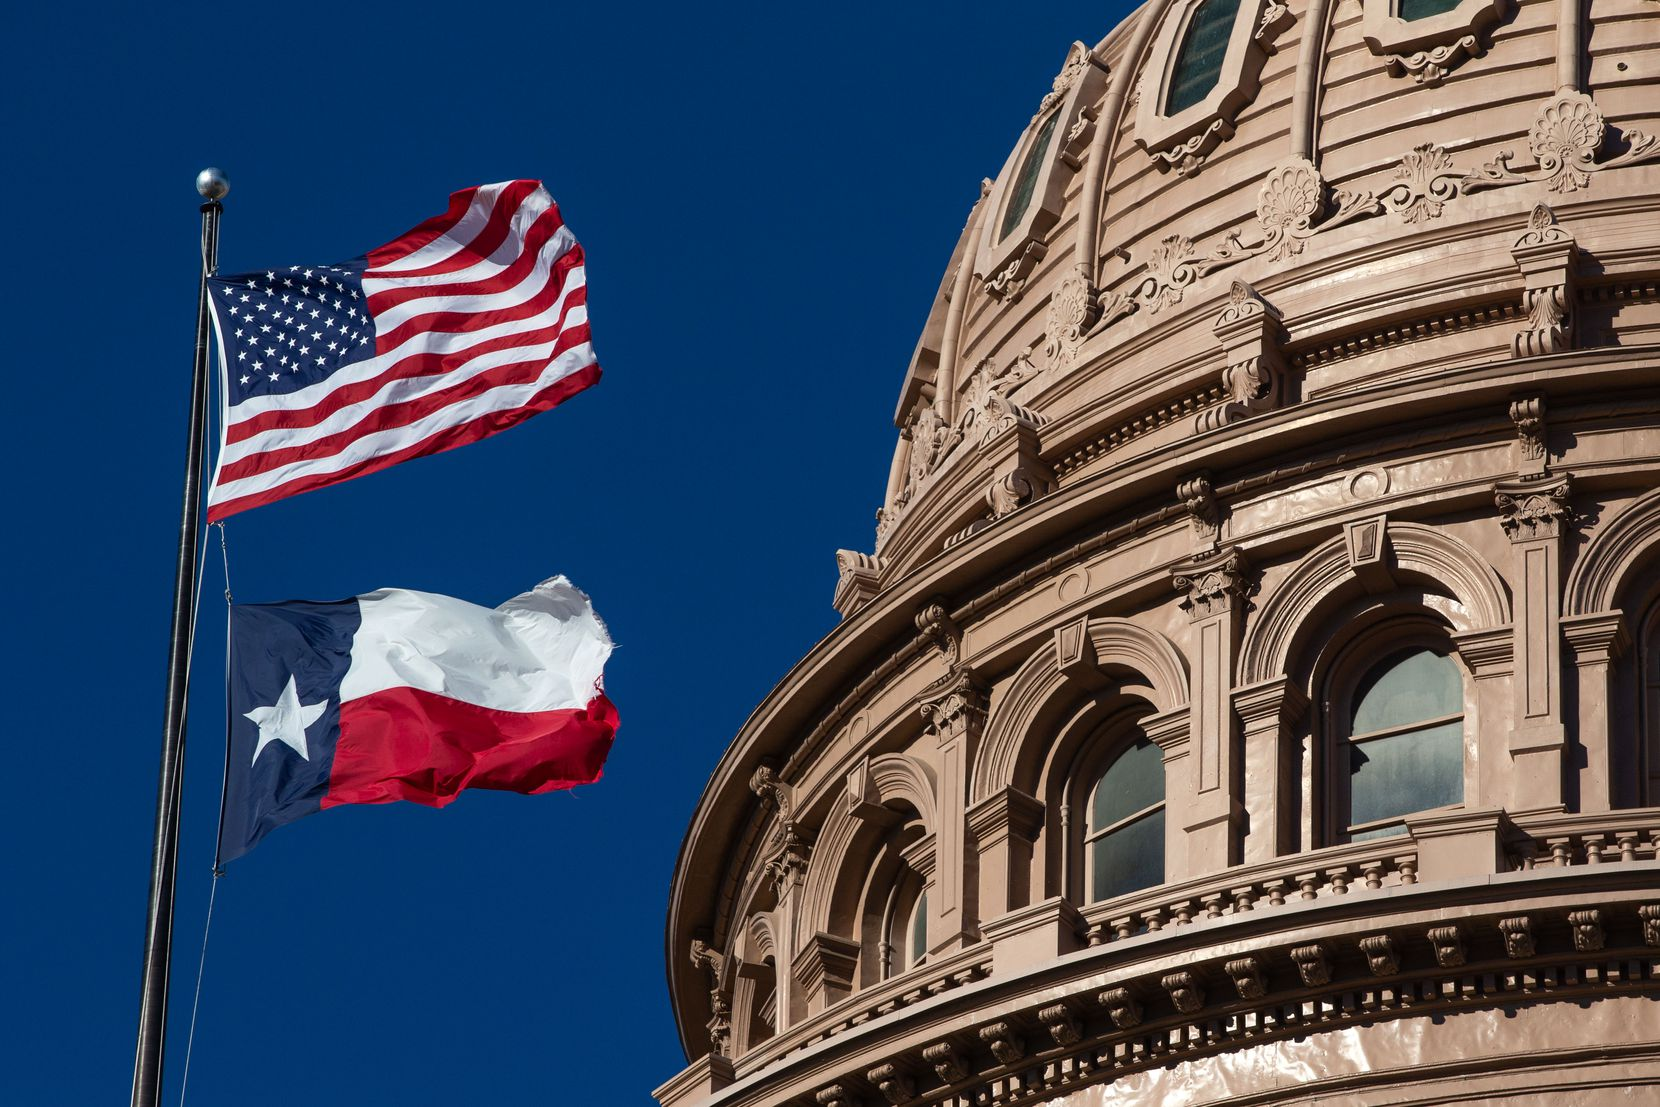 As they write the next two-year budget, Texas lawmakers start out in a hole. Last July, Comptroller Glenn Hegar downwardly revised the previous revenue estimate to say the state would have $110.2 billion for general-purpose spending in the current two-year cycle. That was a decrease of $11.6 billion, or 9.5%, from his October 2019 prediction.